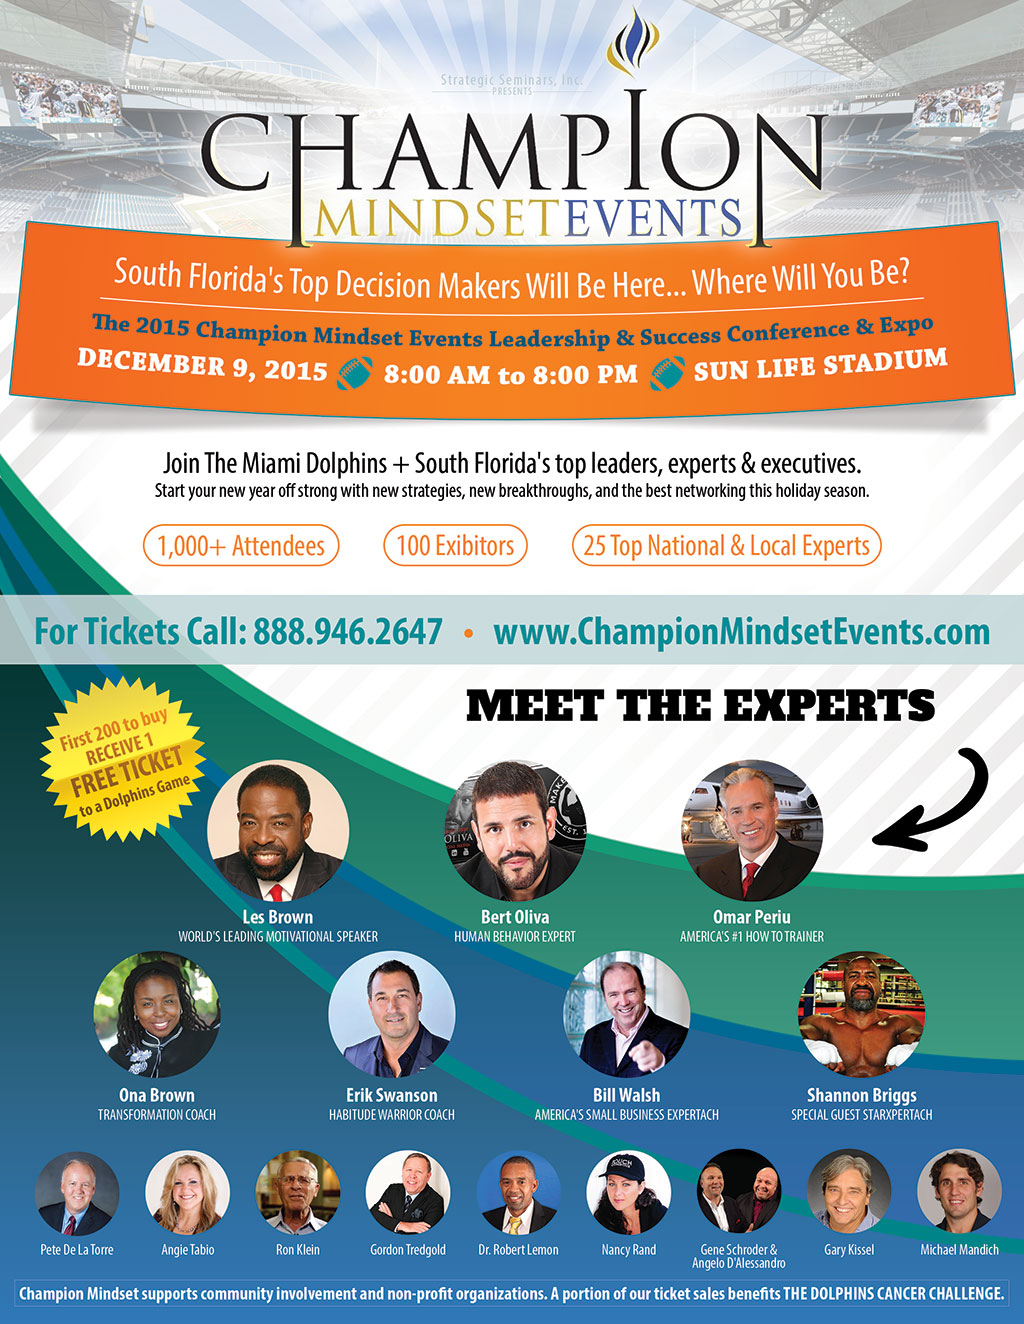 champion-mindset-events-flyer-design